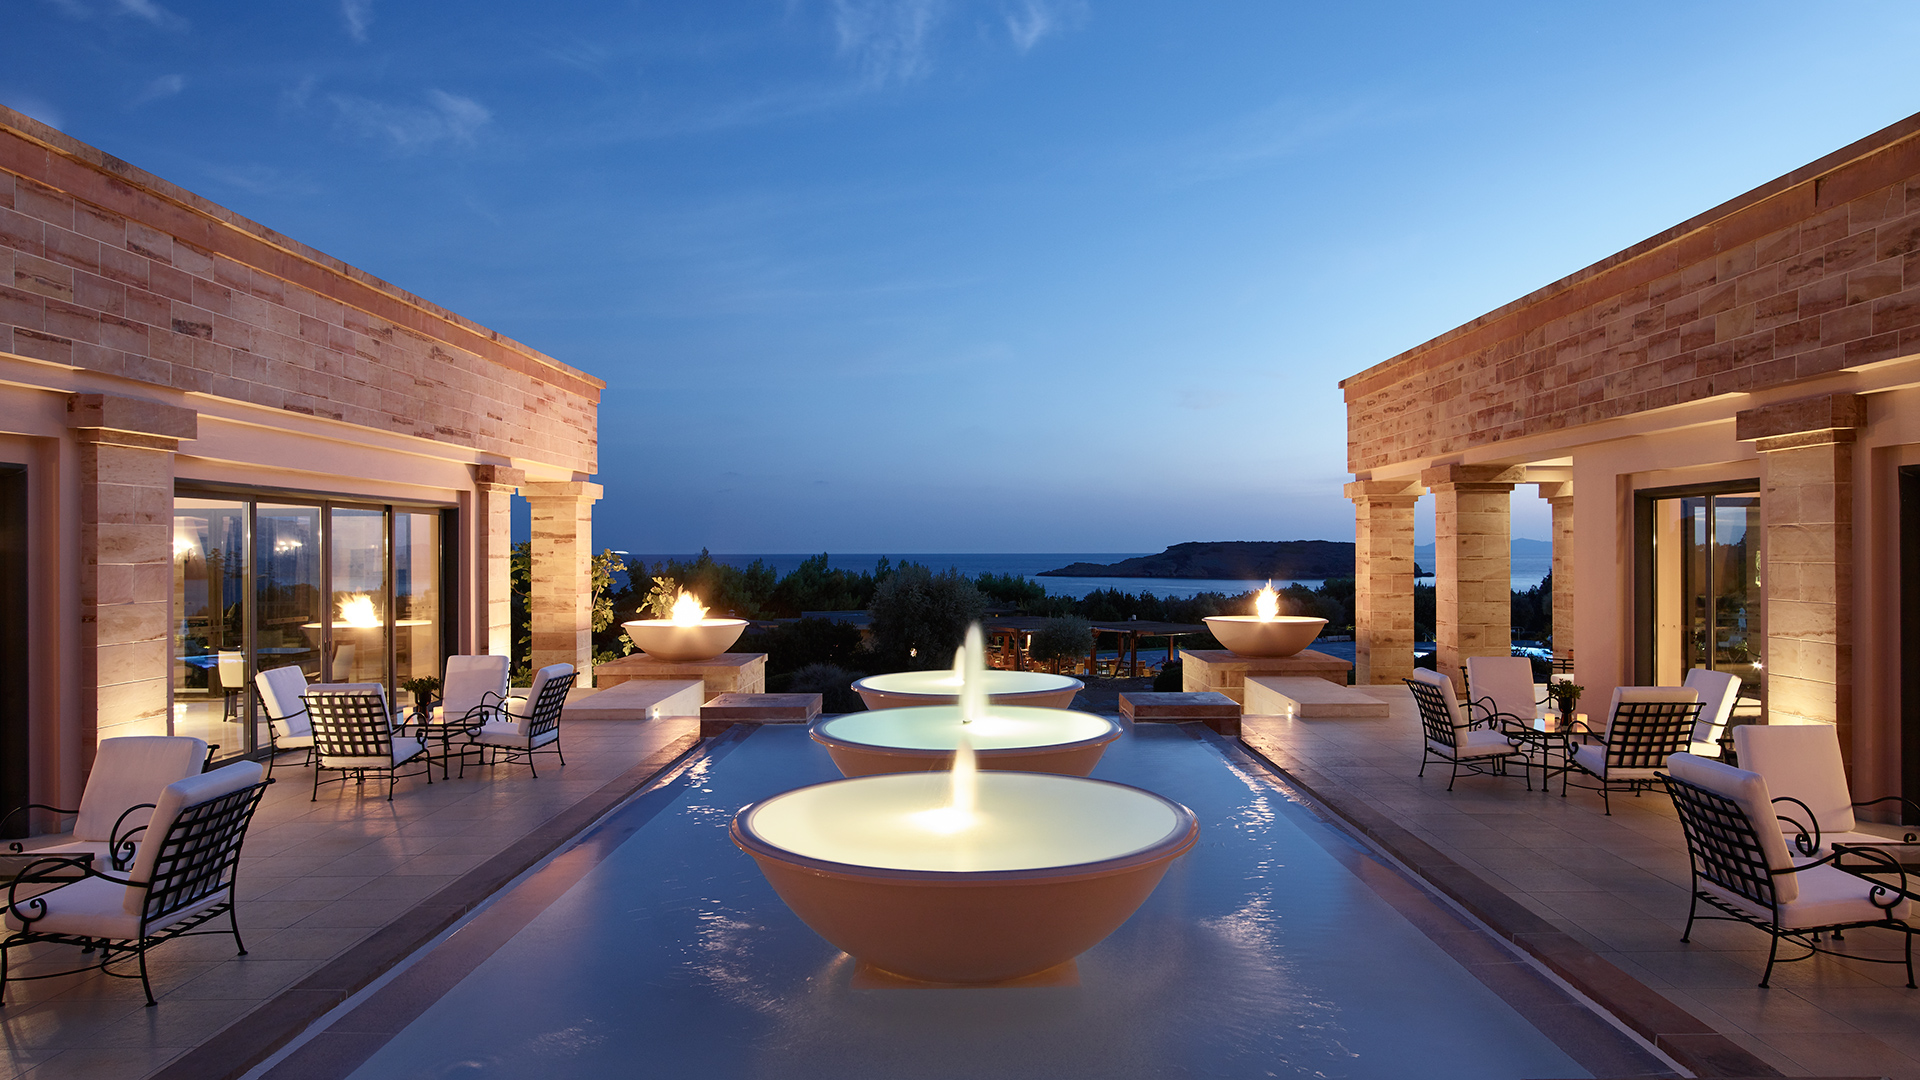 Cape Sounio Luxury Resort in Athens